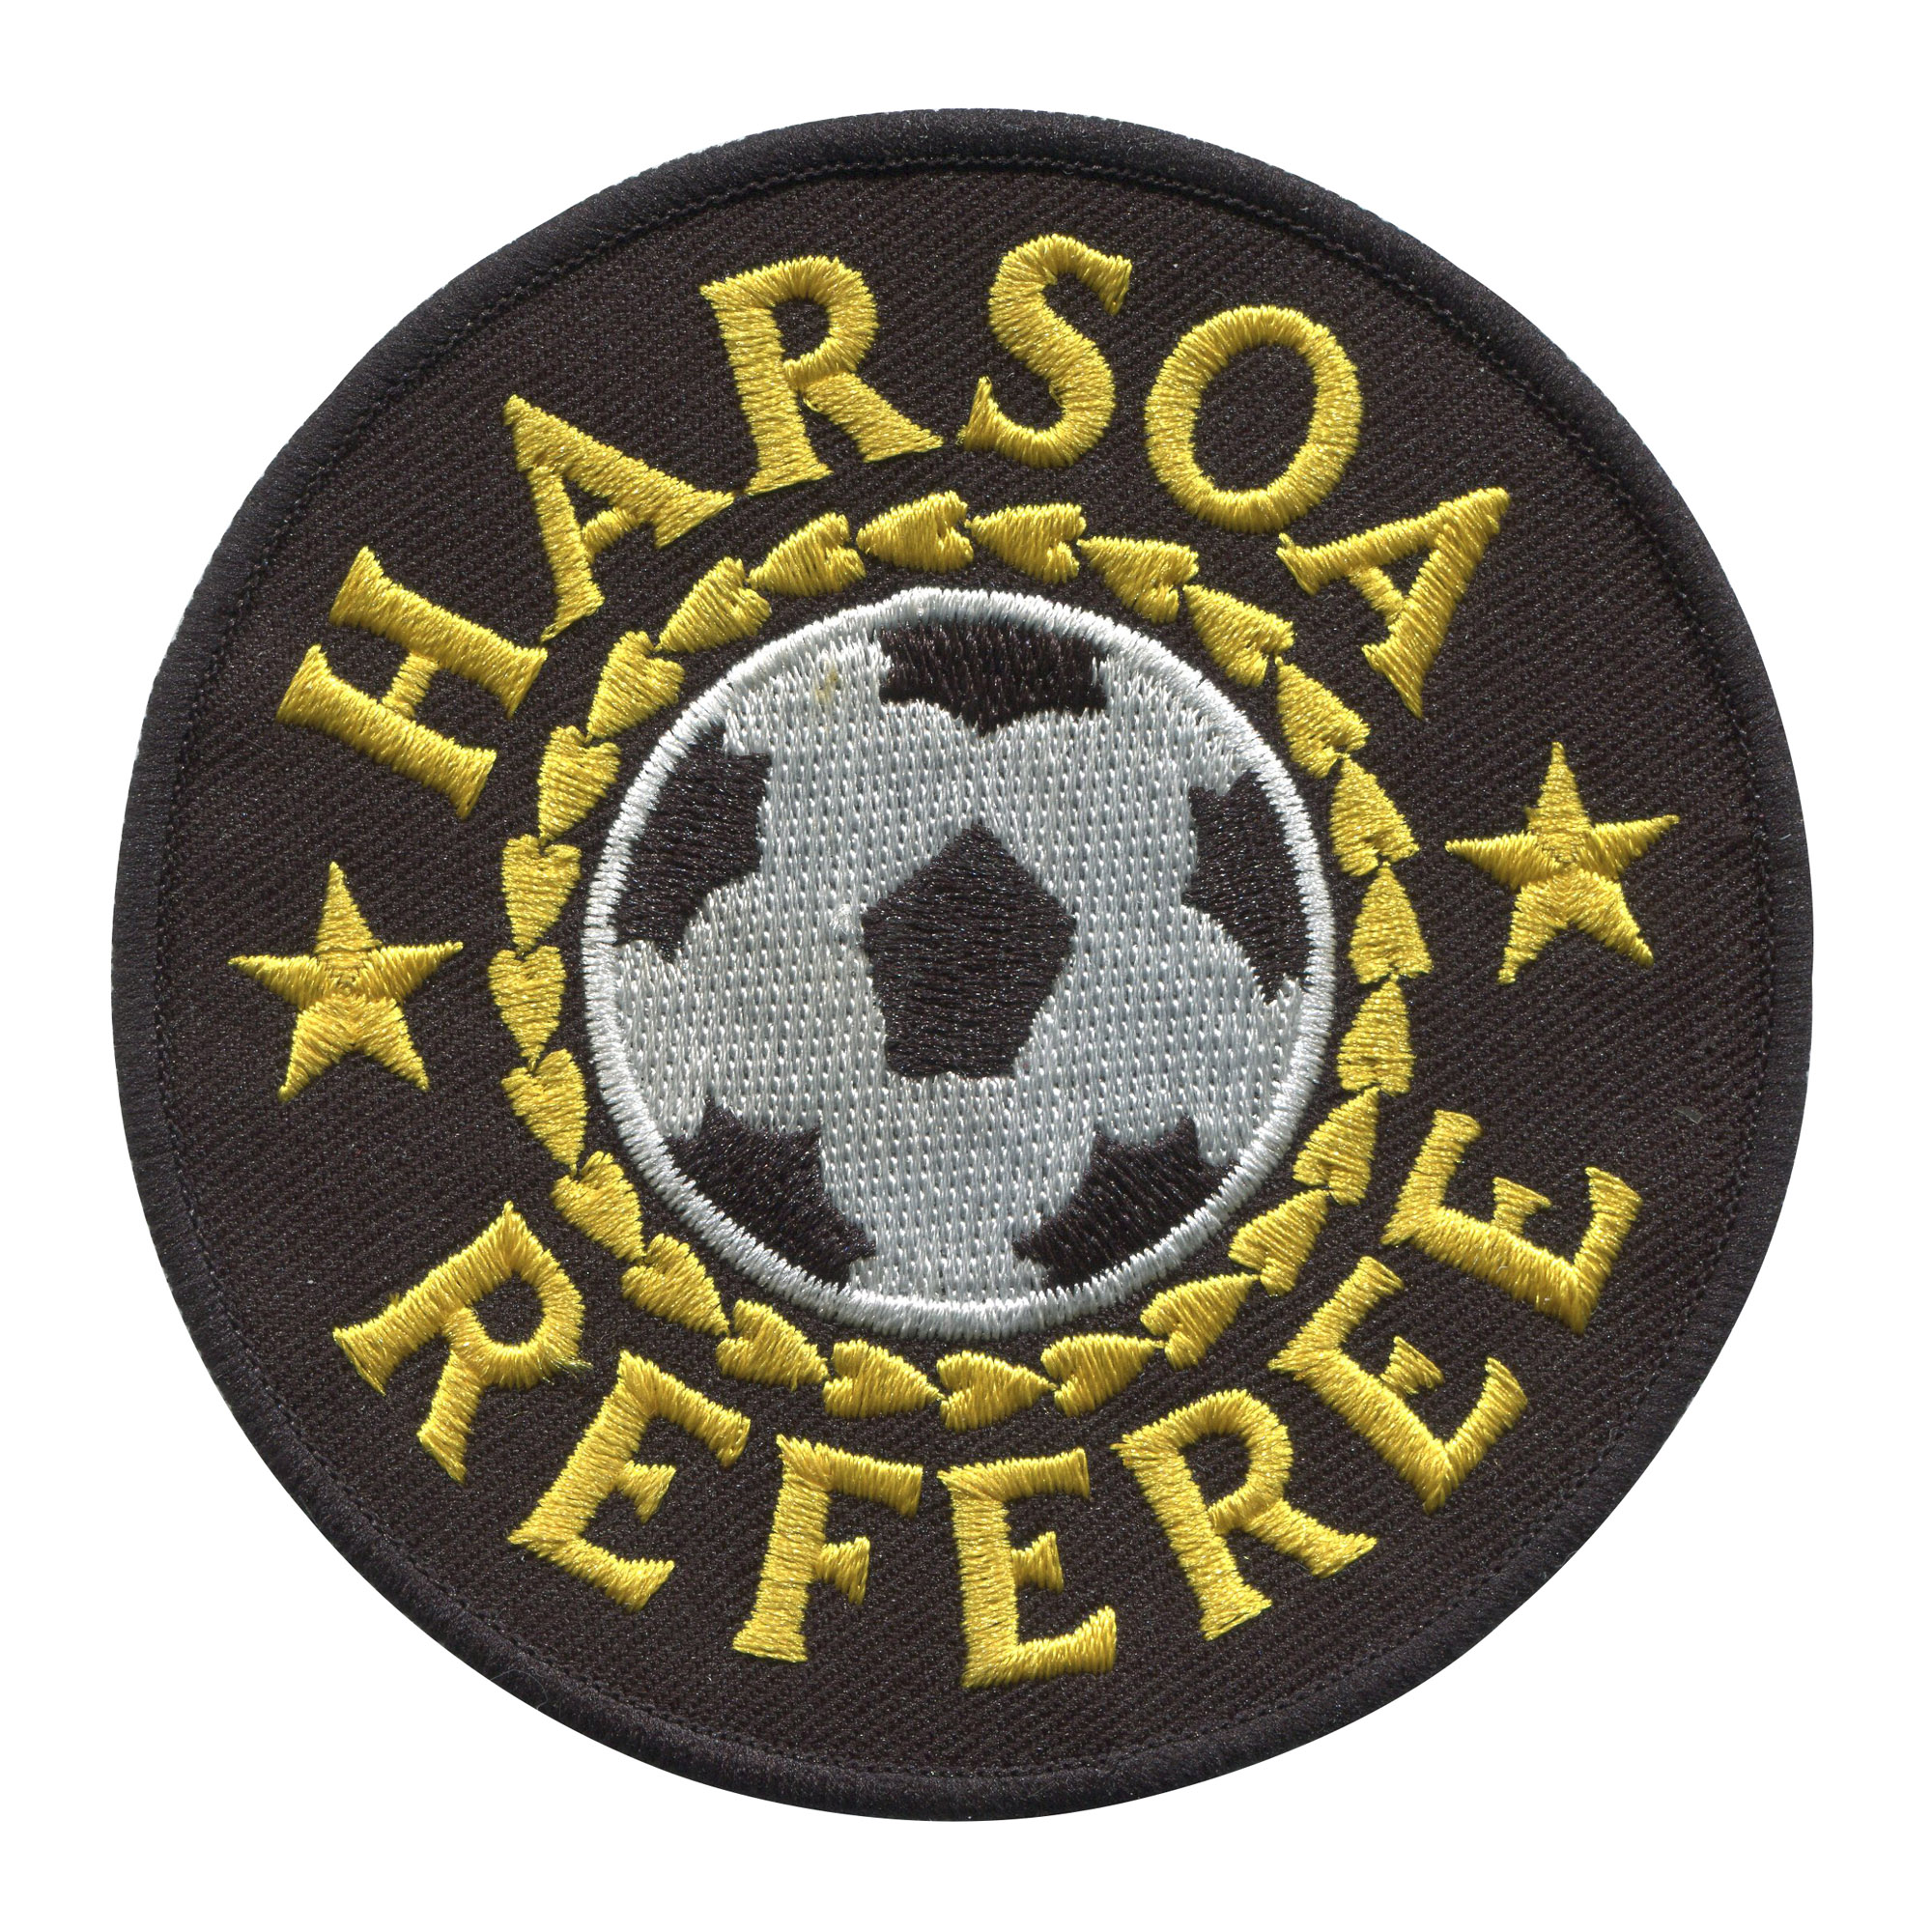 Soccer patches for sale